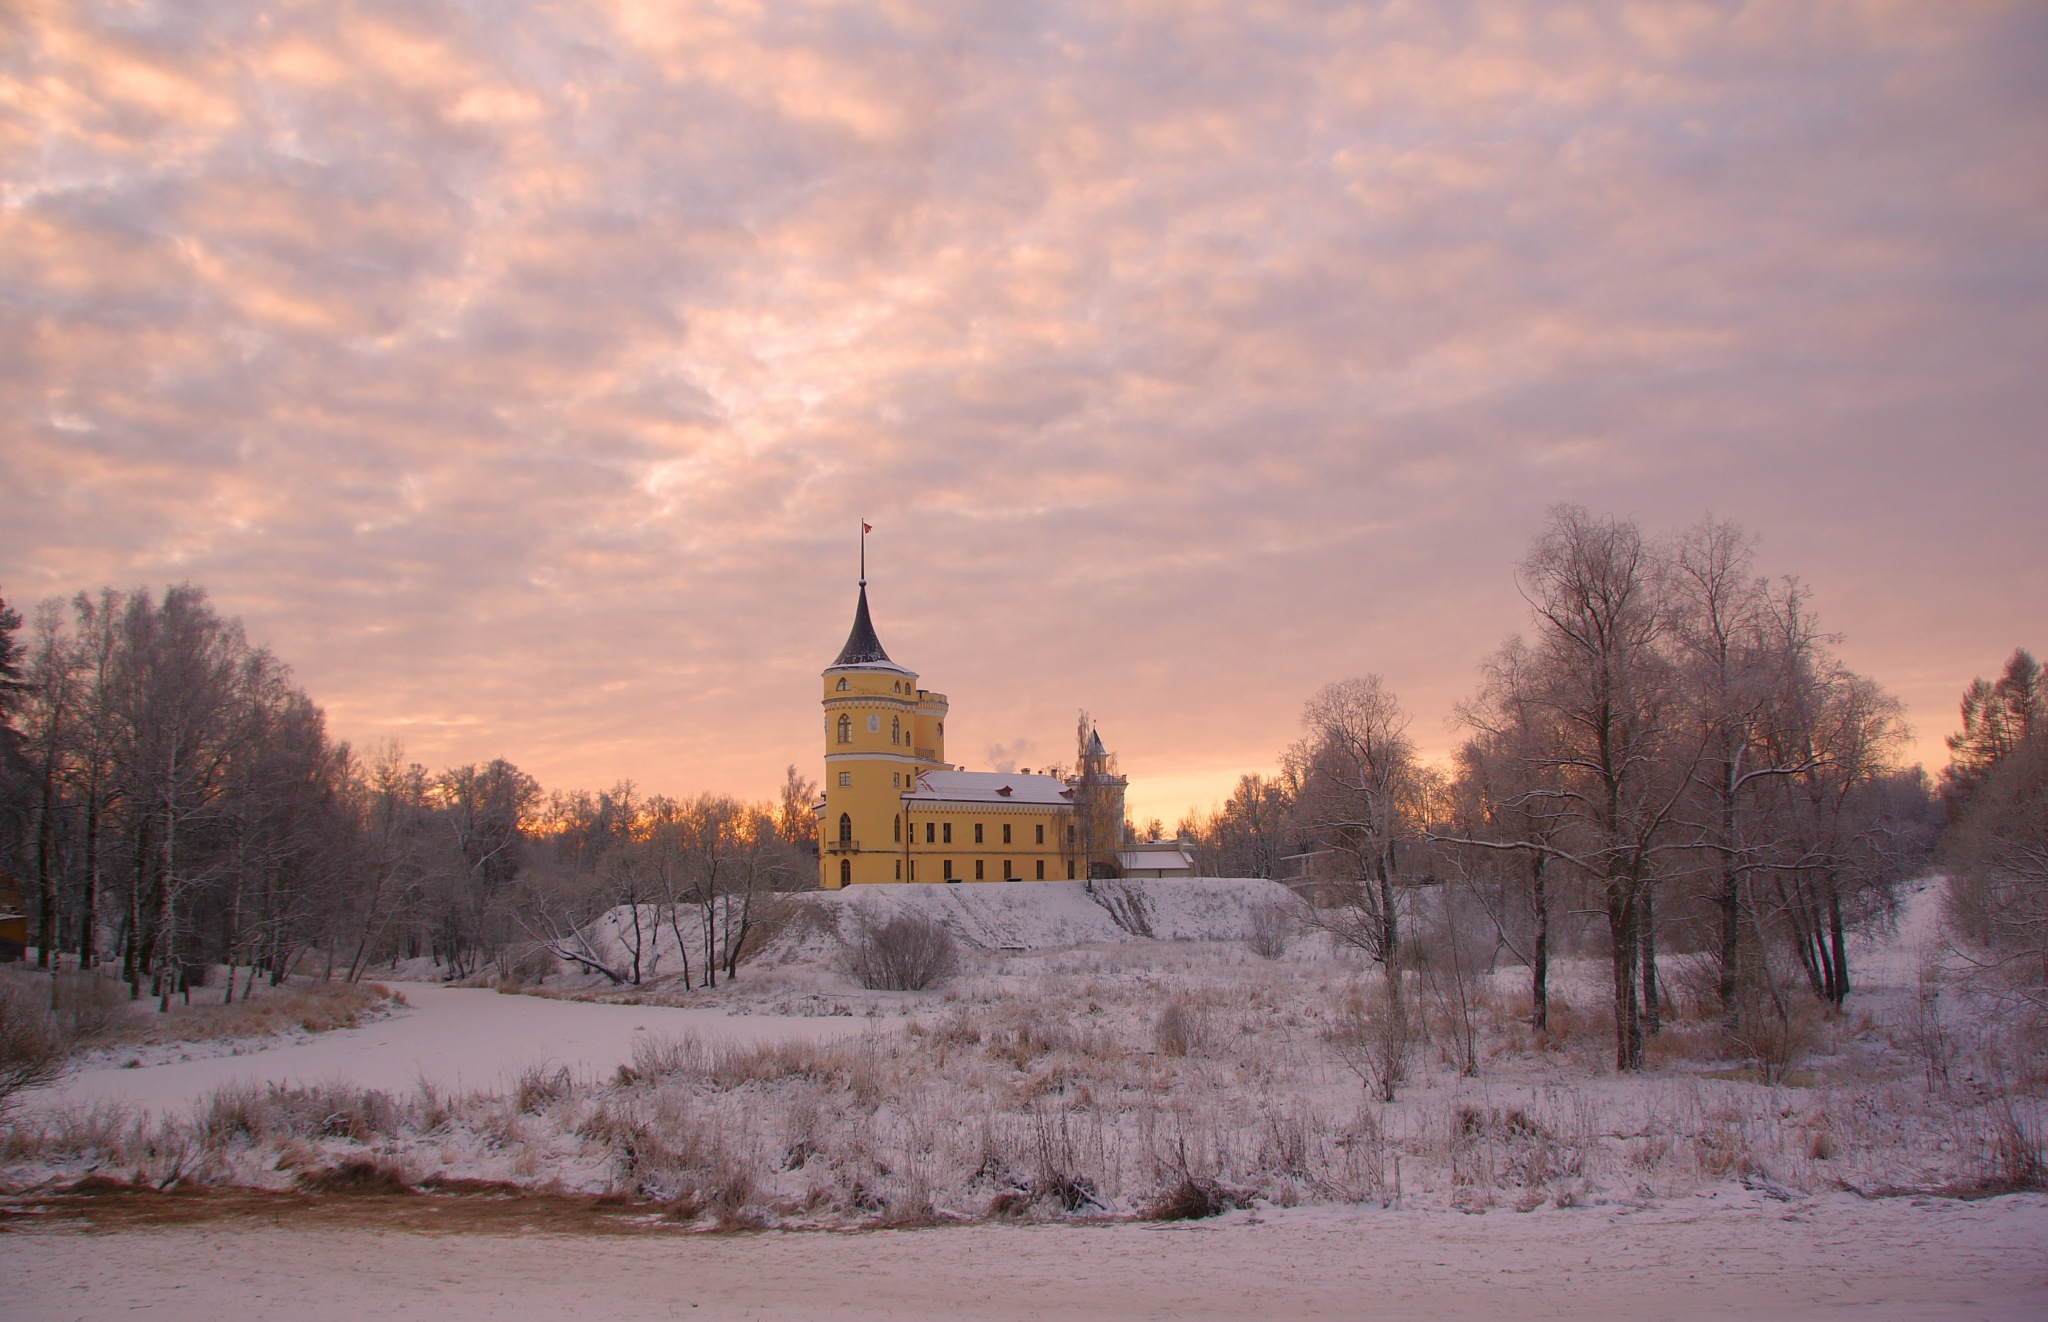 Winter frosty morning by Sergey Andreevich